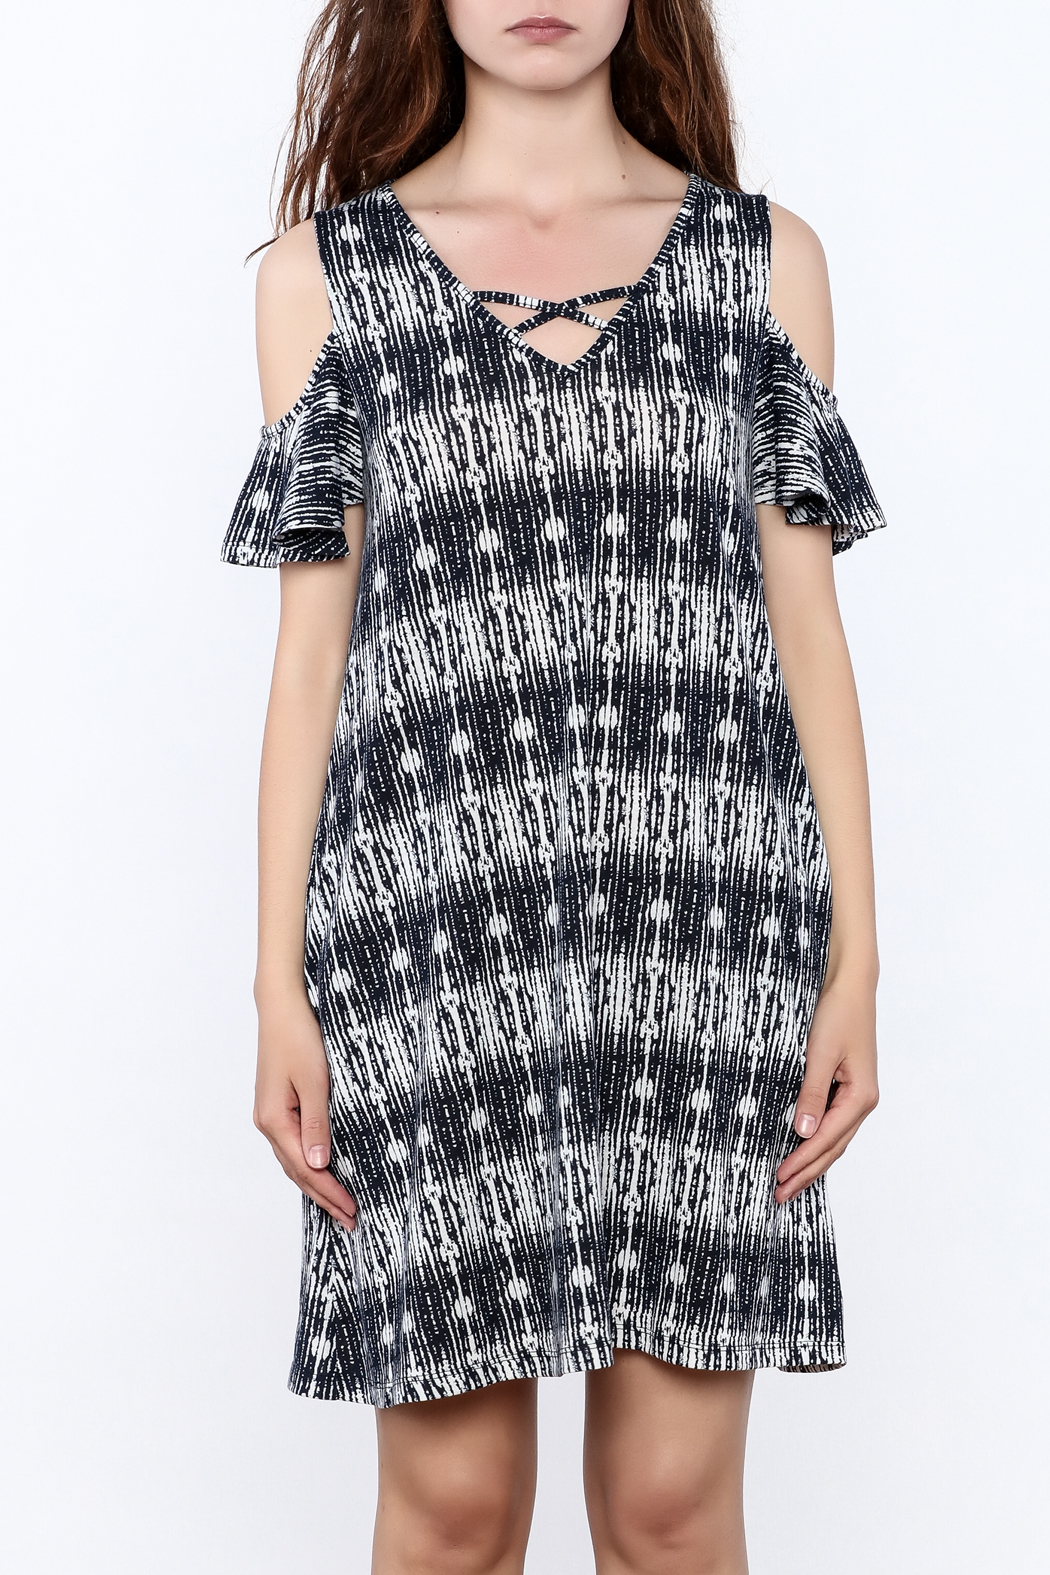 y&i clothing boutique Black Printed Oversized Dress - Side Cropped Image